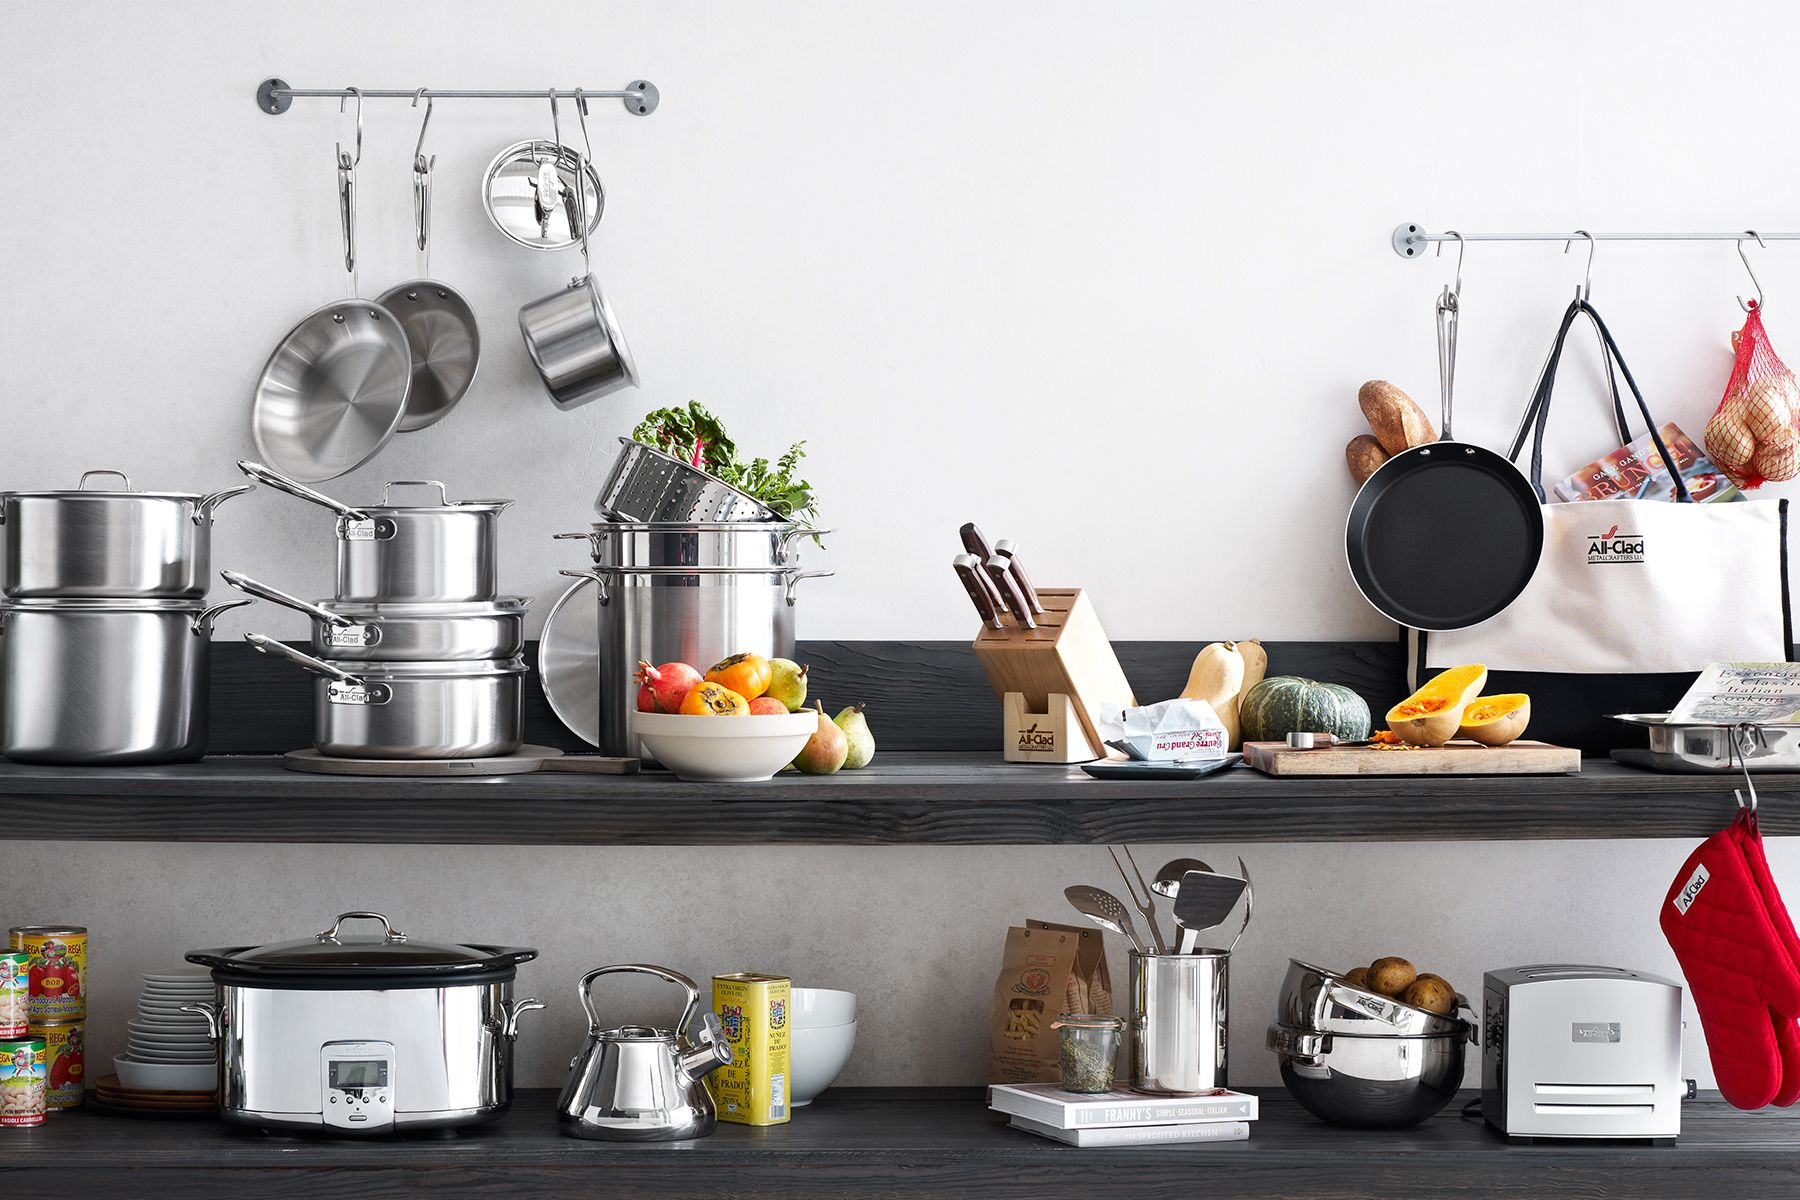 All Clad.Housewares, Kitchen And Homegoods Photography By Greg DuPree  Www.dovisbird.